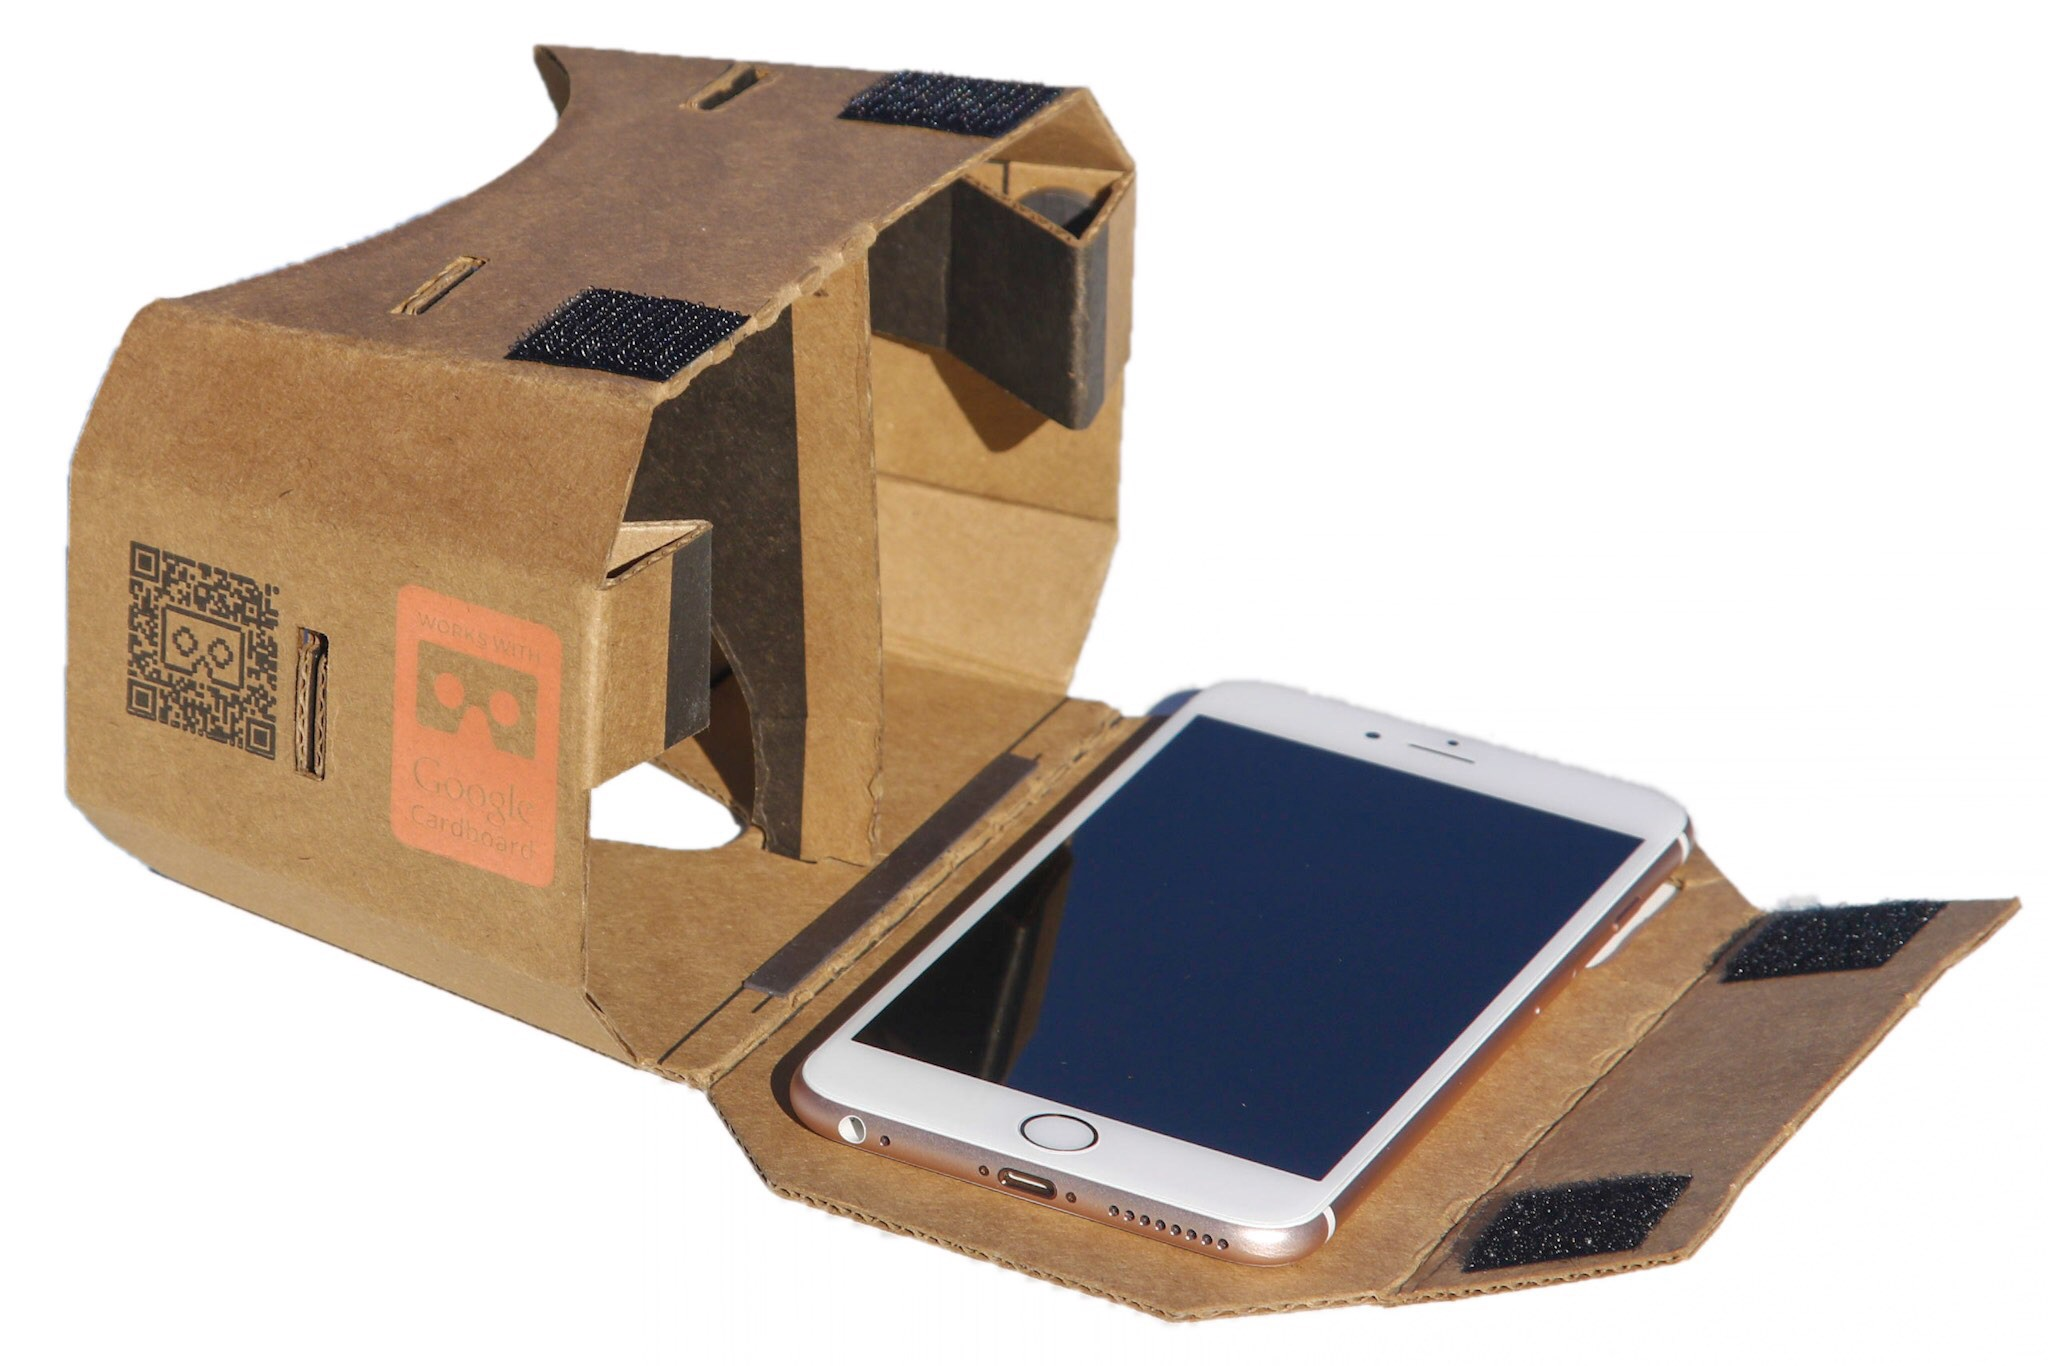 Google_Cardboard_iPhone_6Plus